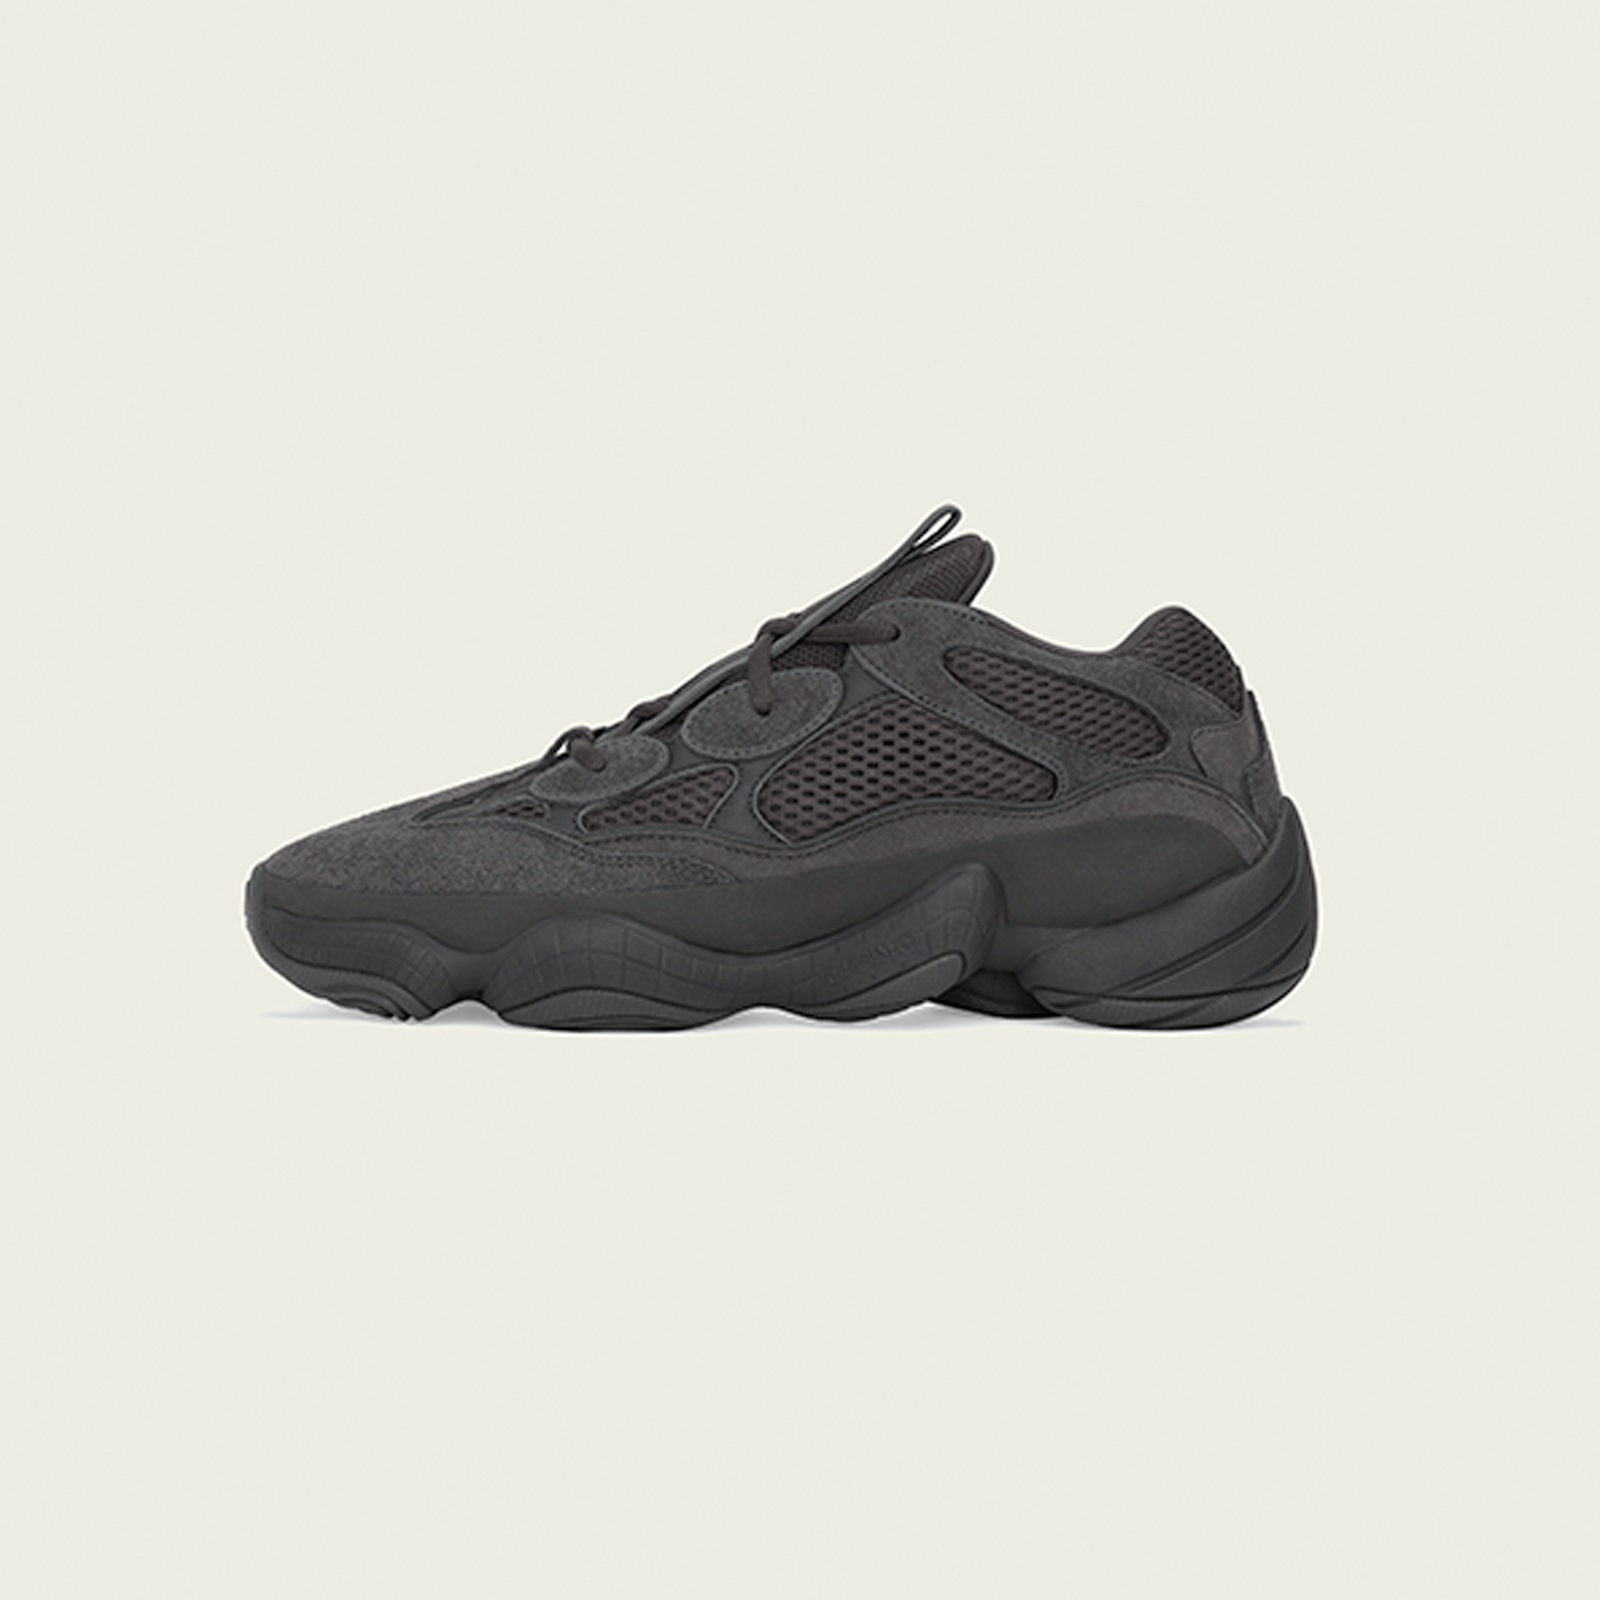 100% authentic 80af4 afc07 adidas Yeezy 500 - F36640 - Sneakersnstuff | sneakers ...